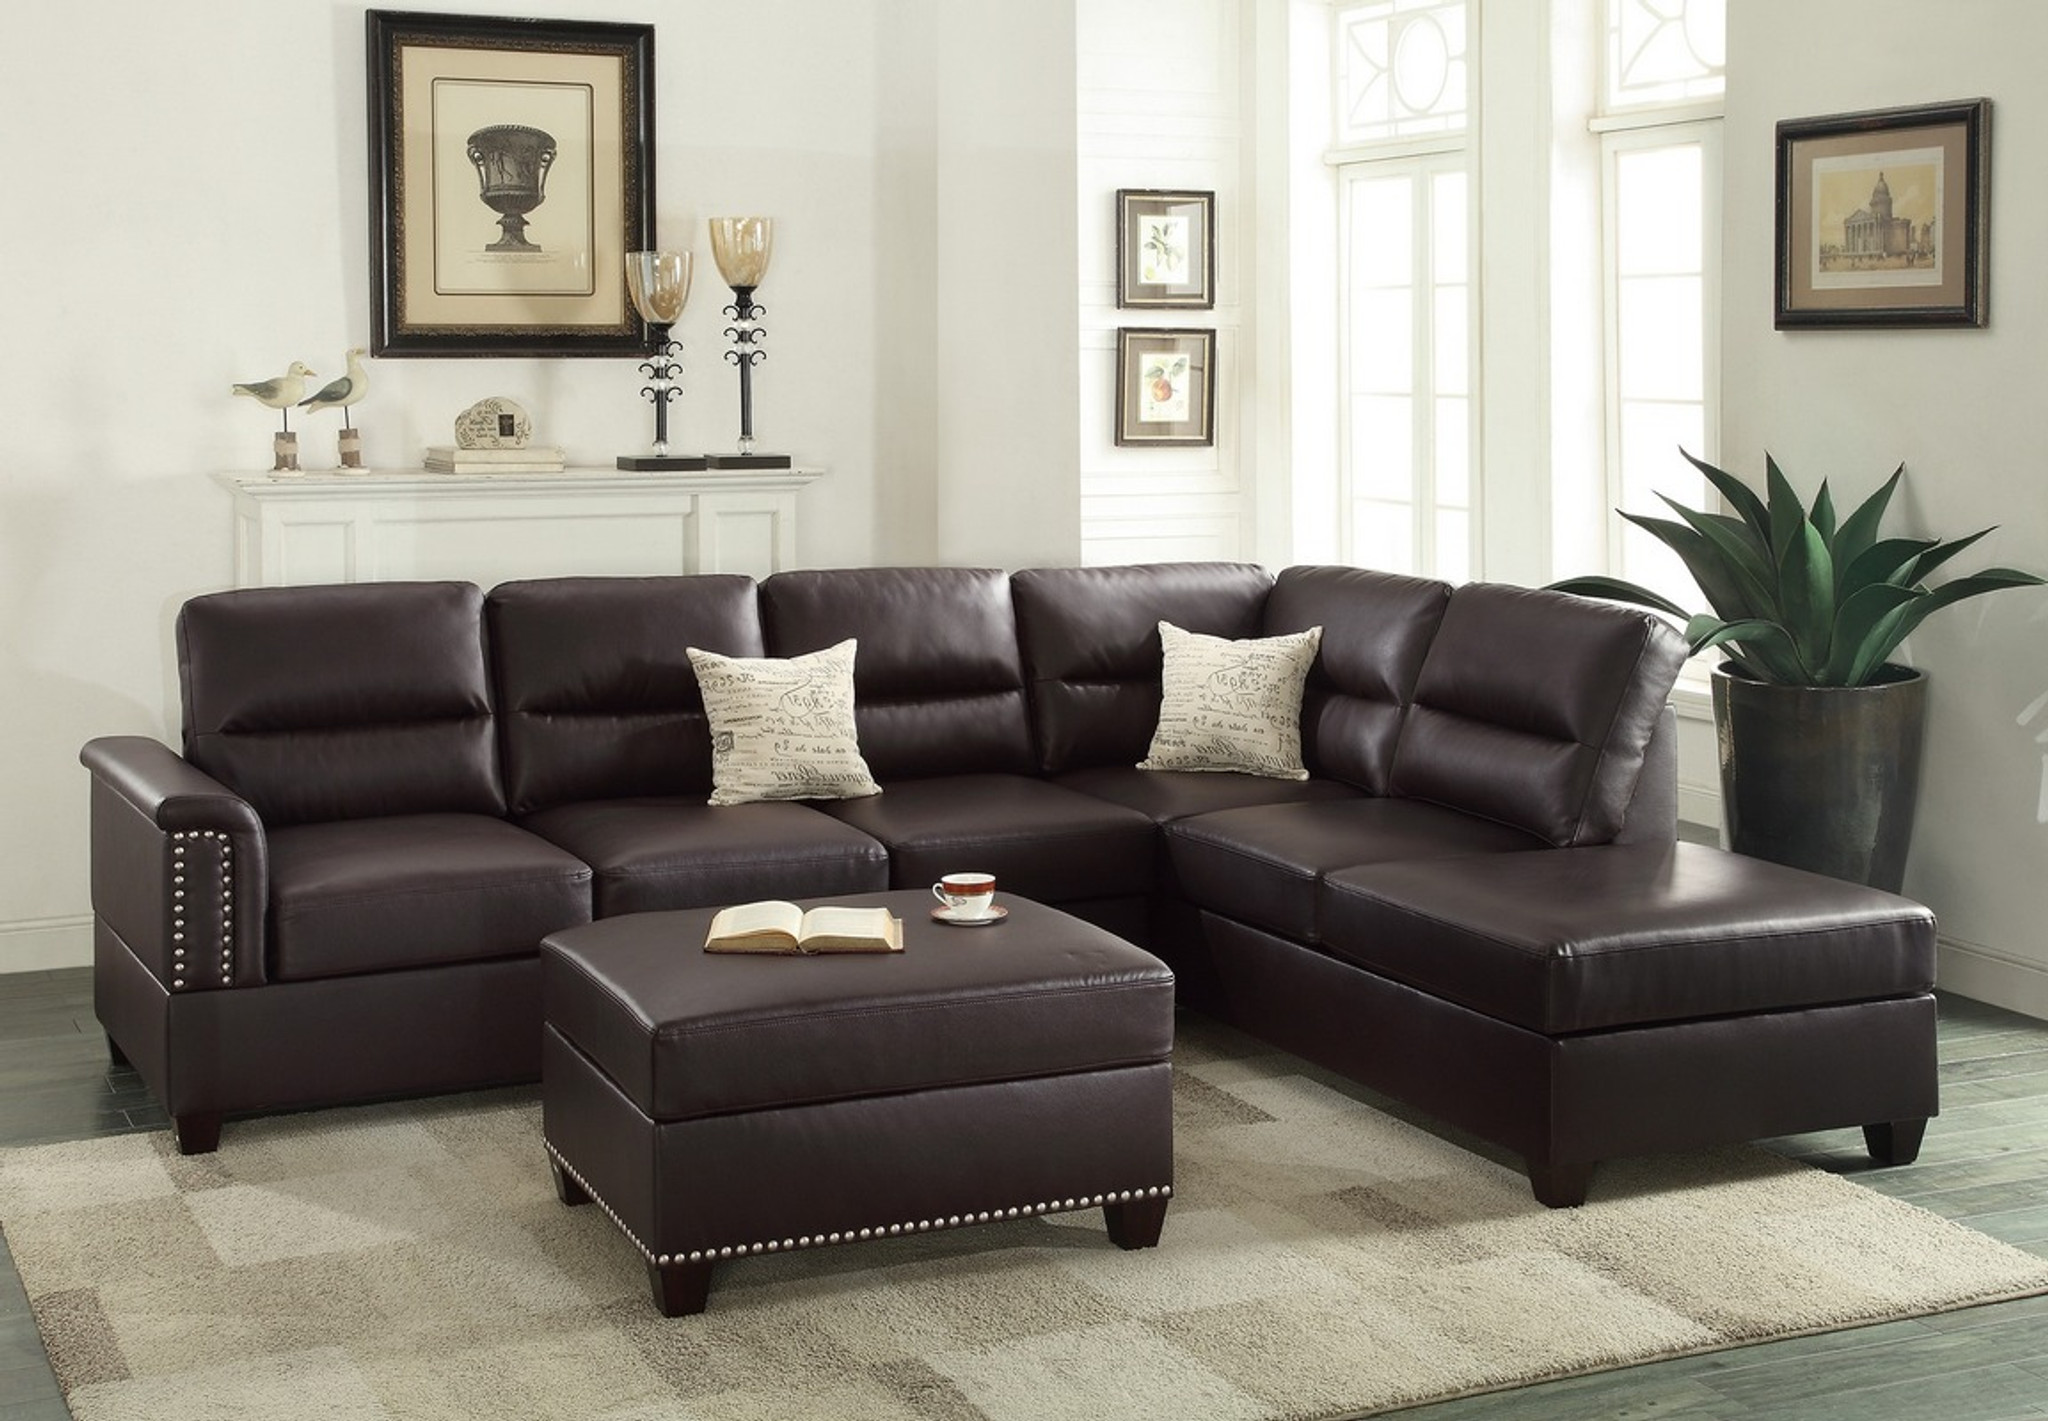 F7609 3pcs Espresso Sectional Sofa Set With Ottoman By Poundex